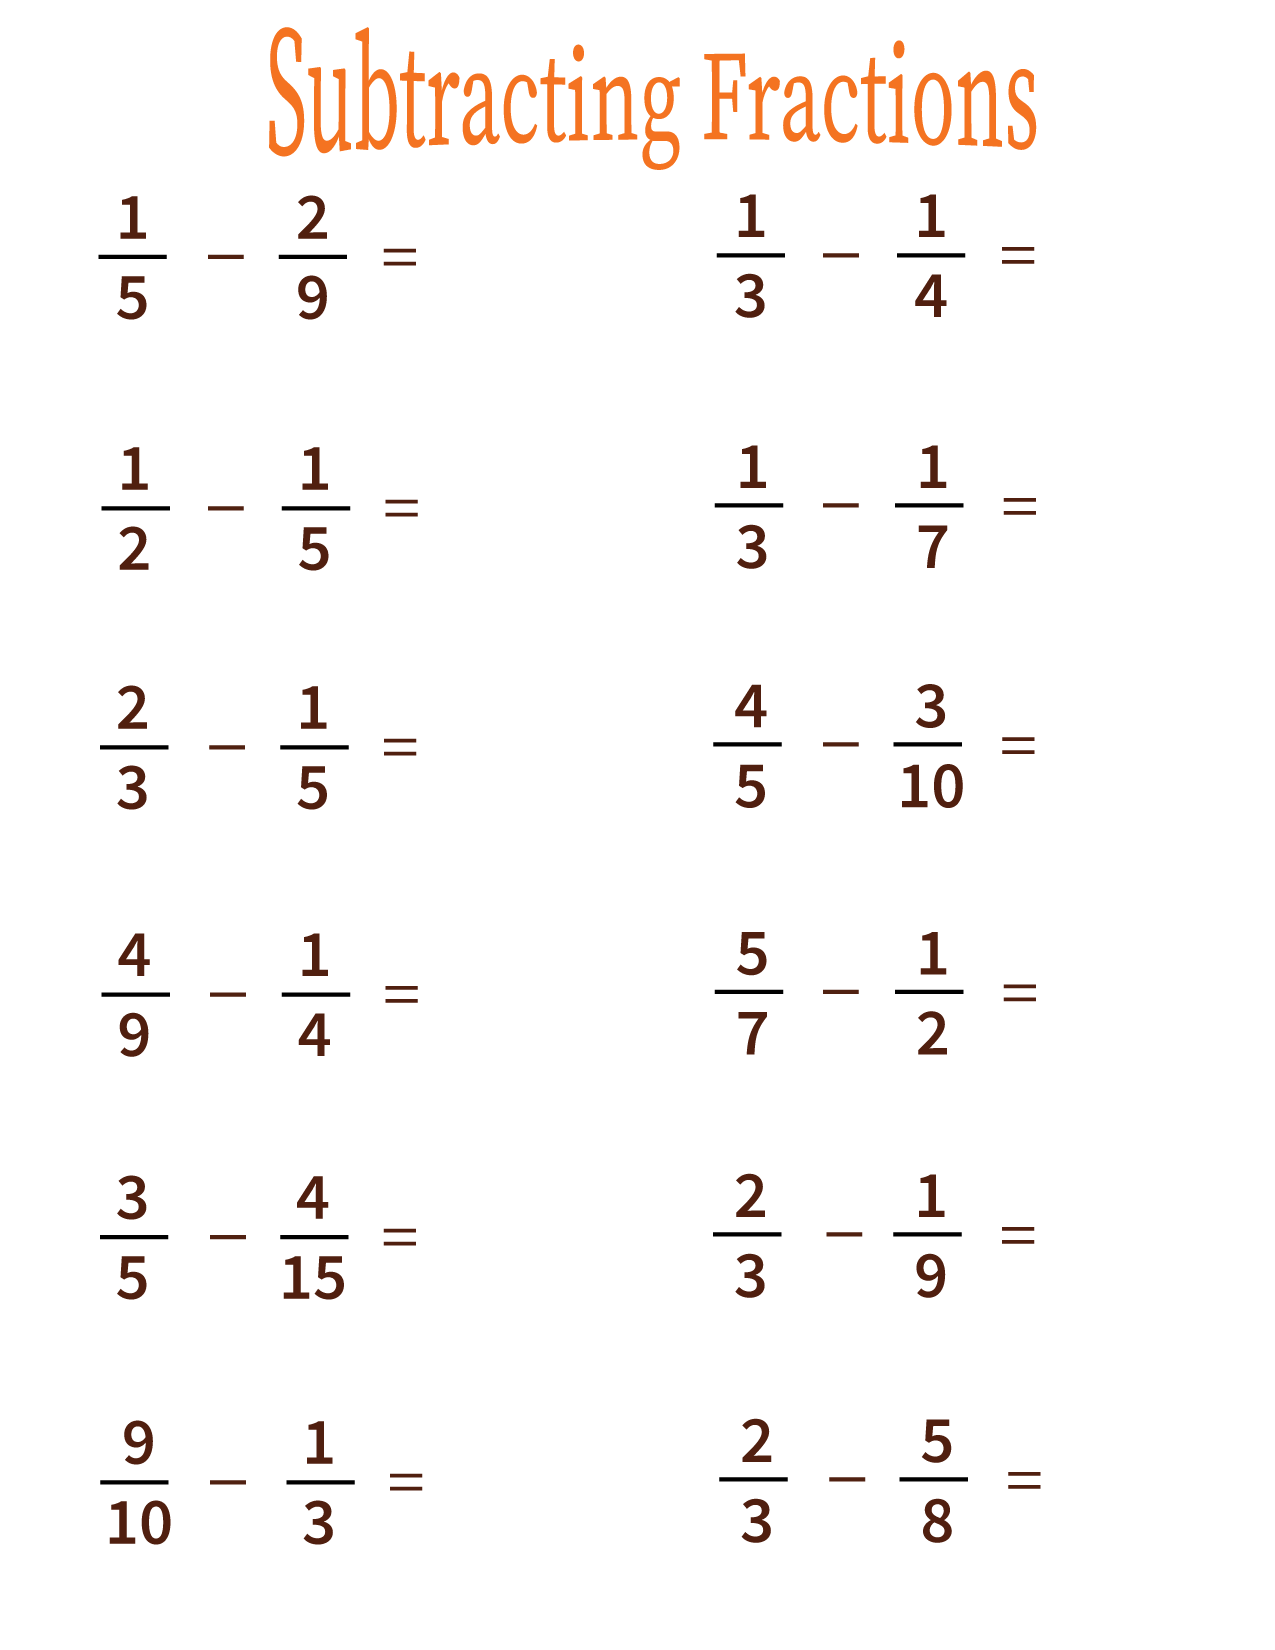 Subtracting fractions worksheet